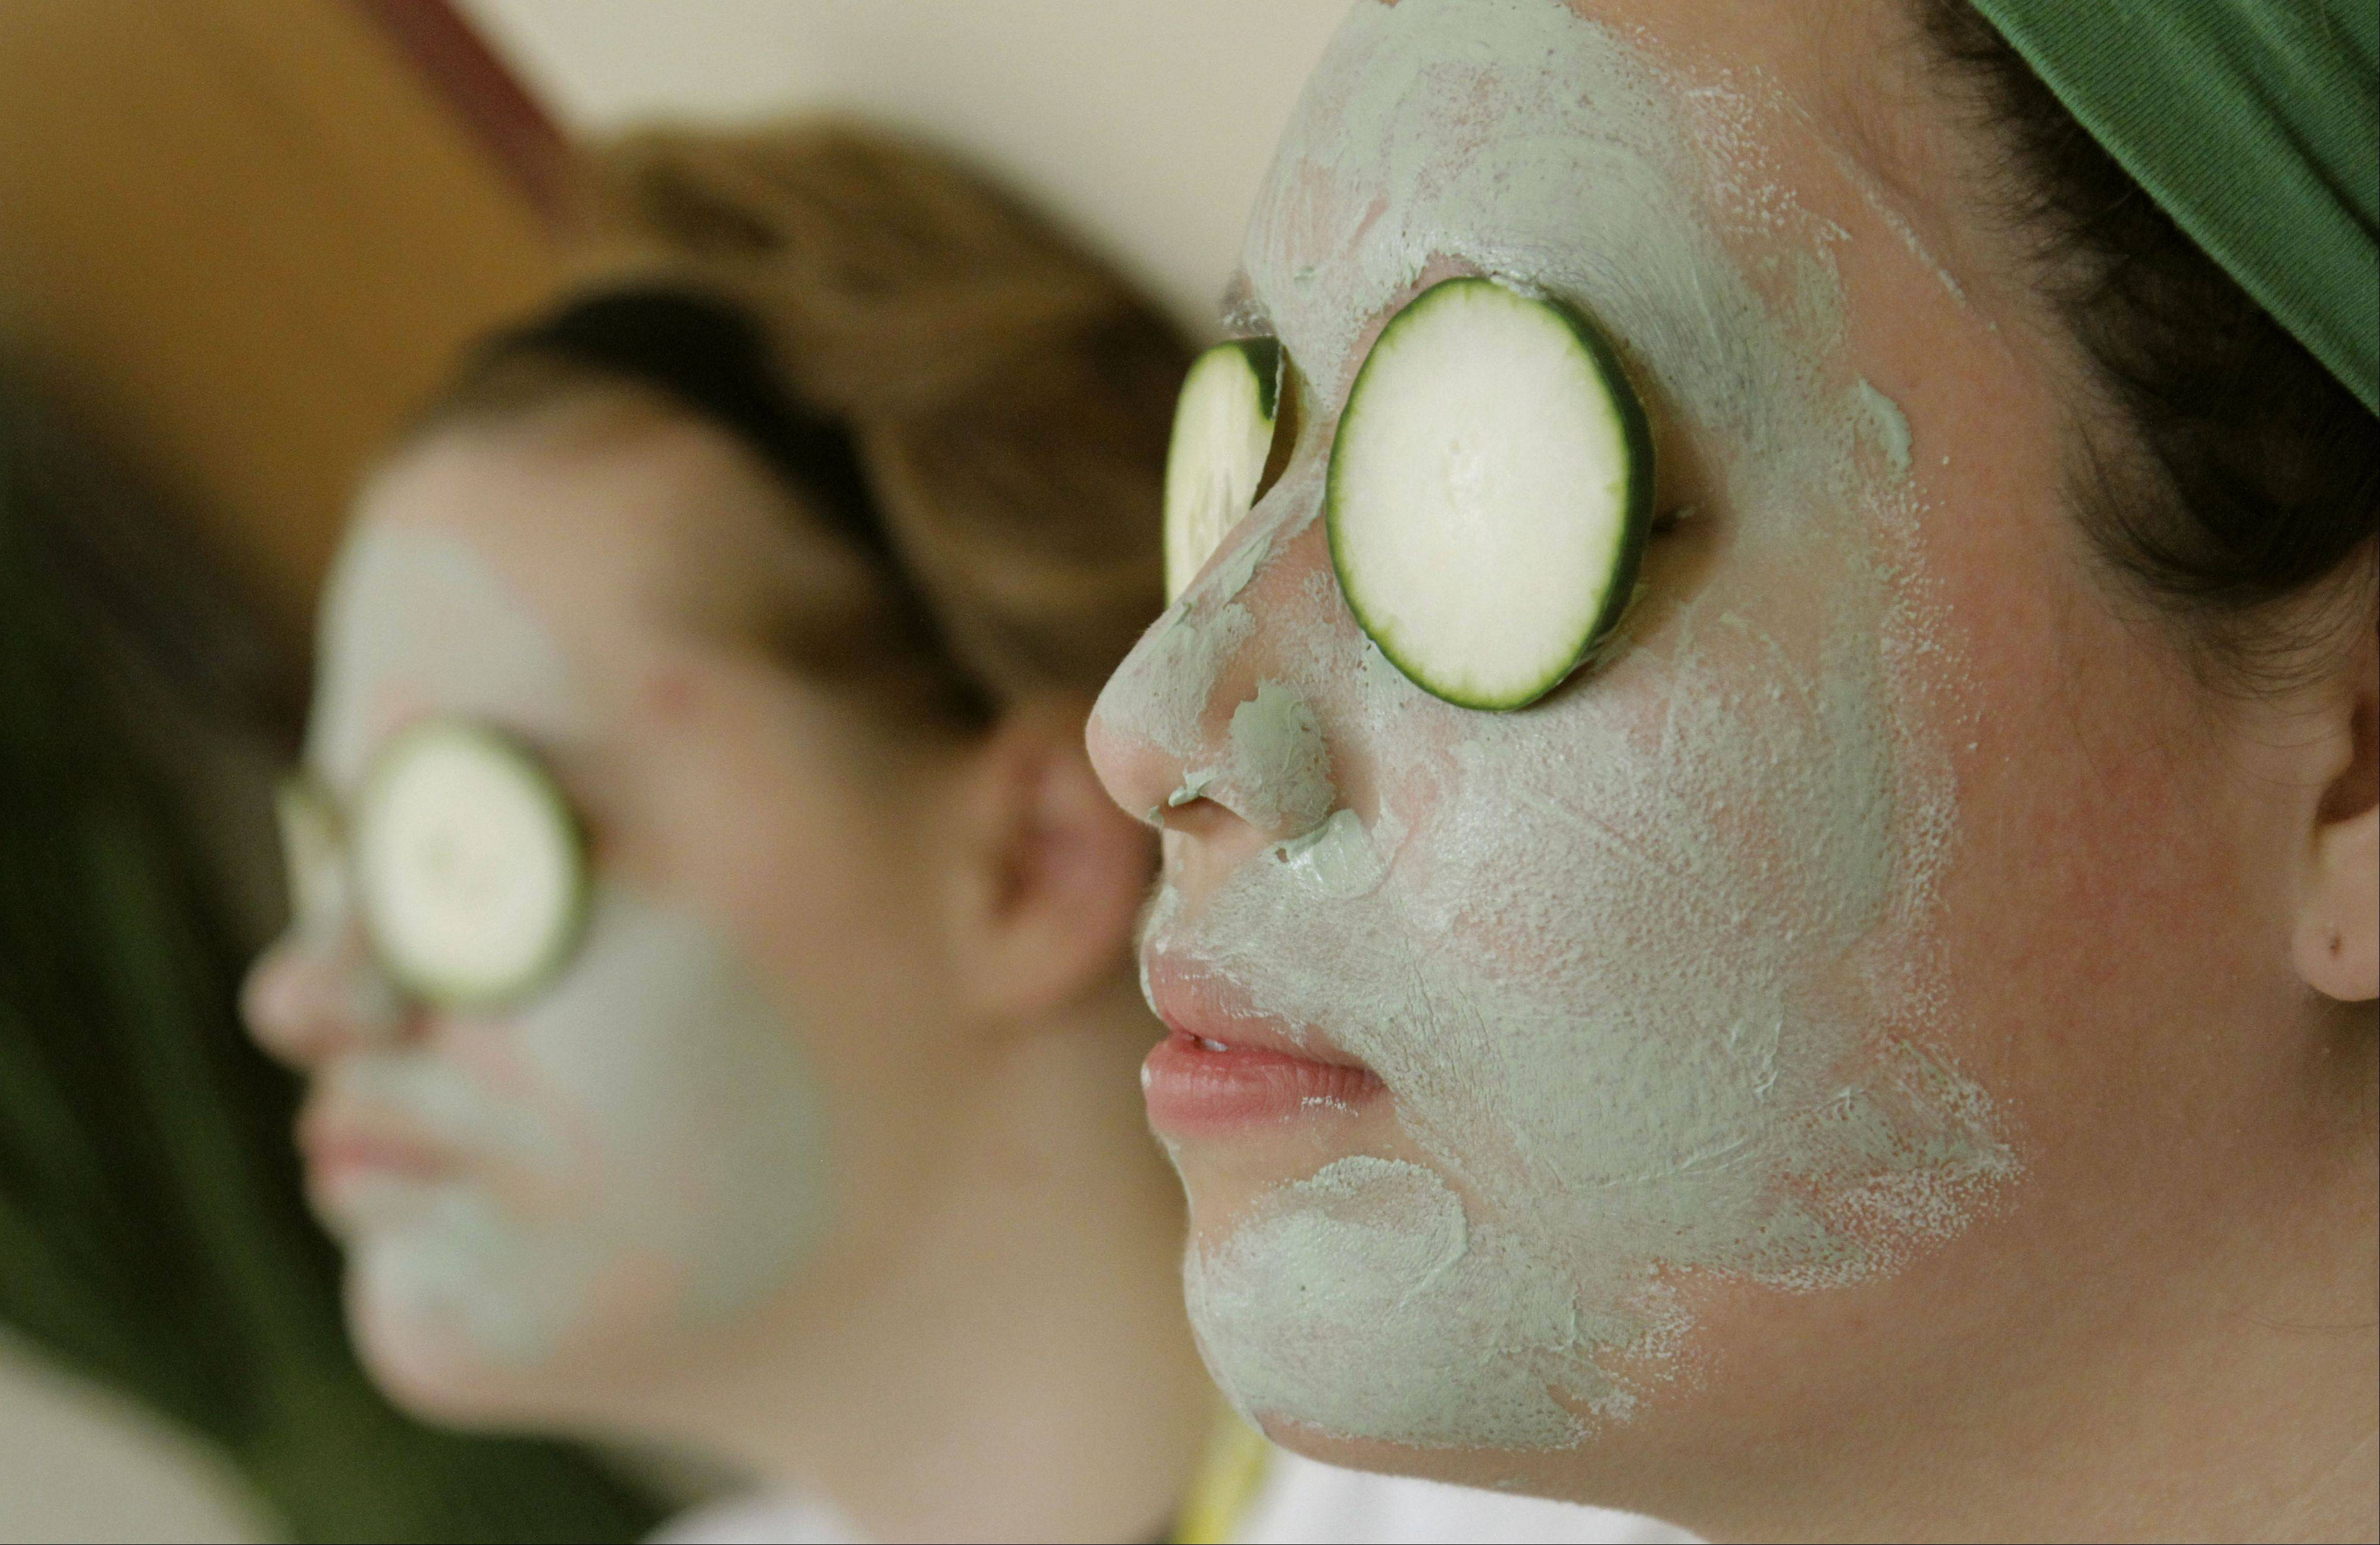 Eighth grade girls Jessica Sweeney, left, and Maria Hernandez get facials as 24 kids were treated to a pampering spa day before attending their annual eighth grade promotion dance Friday at John T. Magee Middle School in Round Lake.